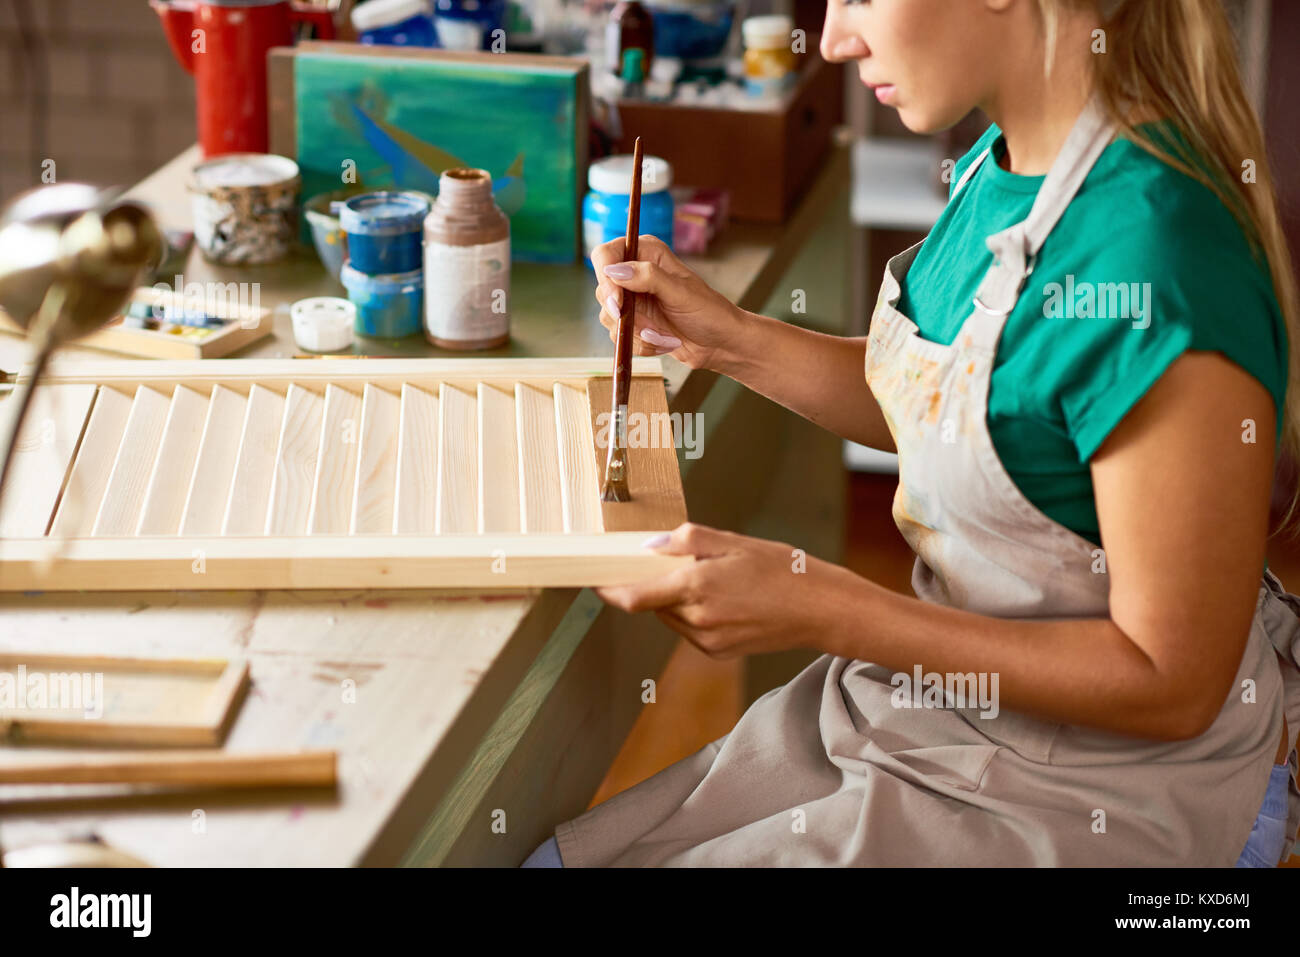 Young Woman Enjoying Crafting in Studio - Stock Image